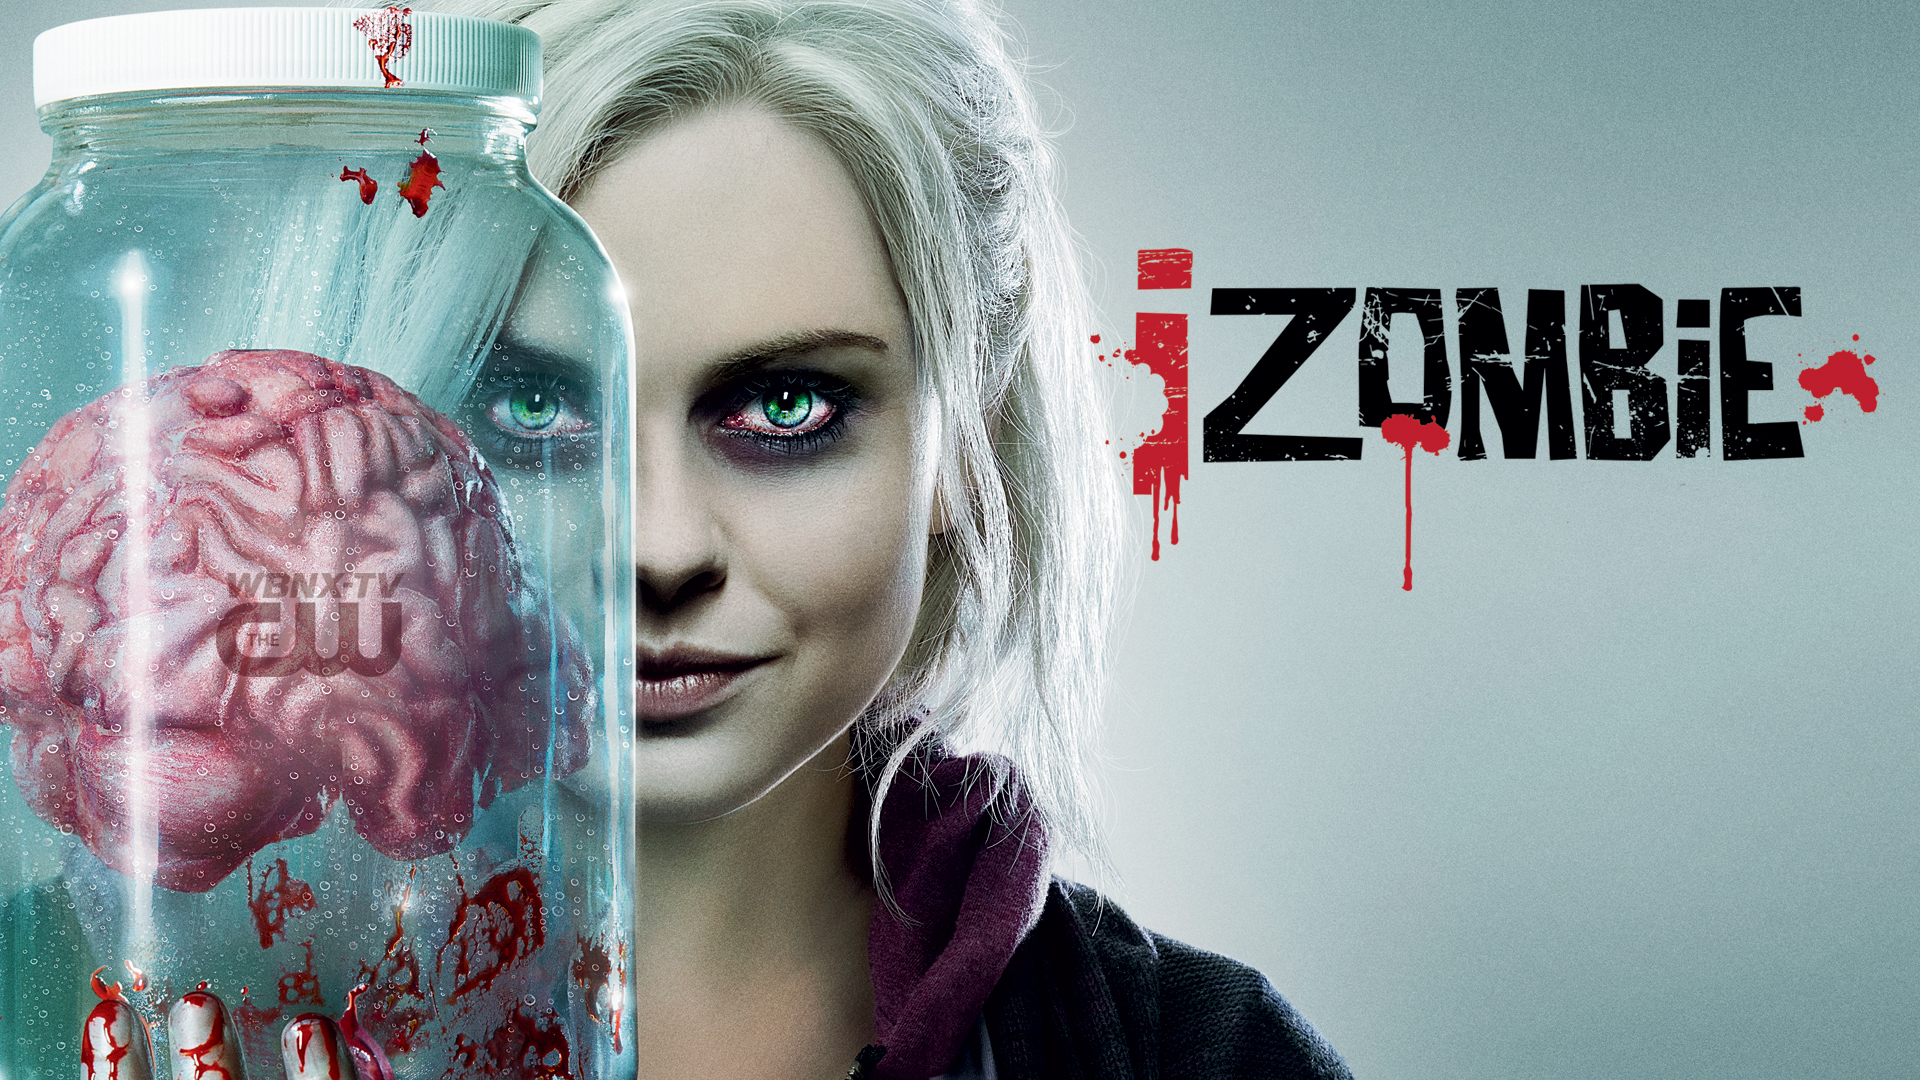 wp_izombie_brains_16x9